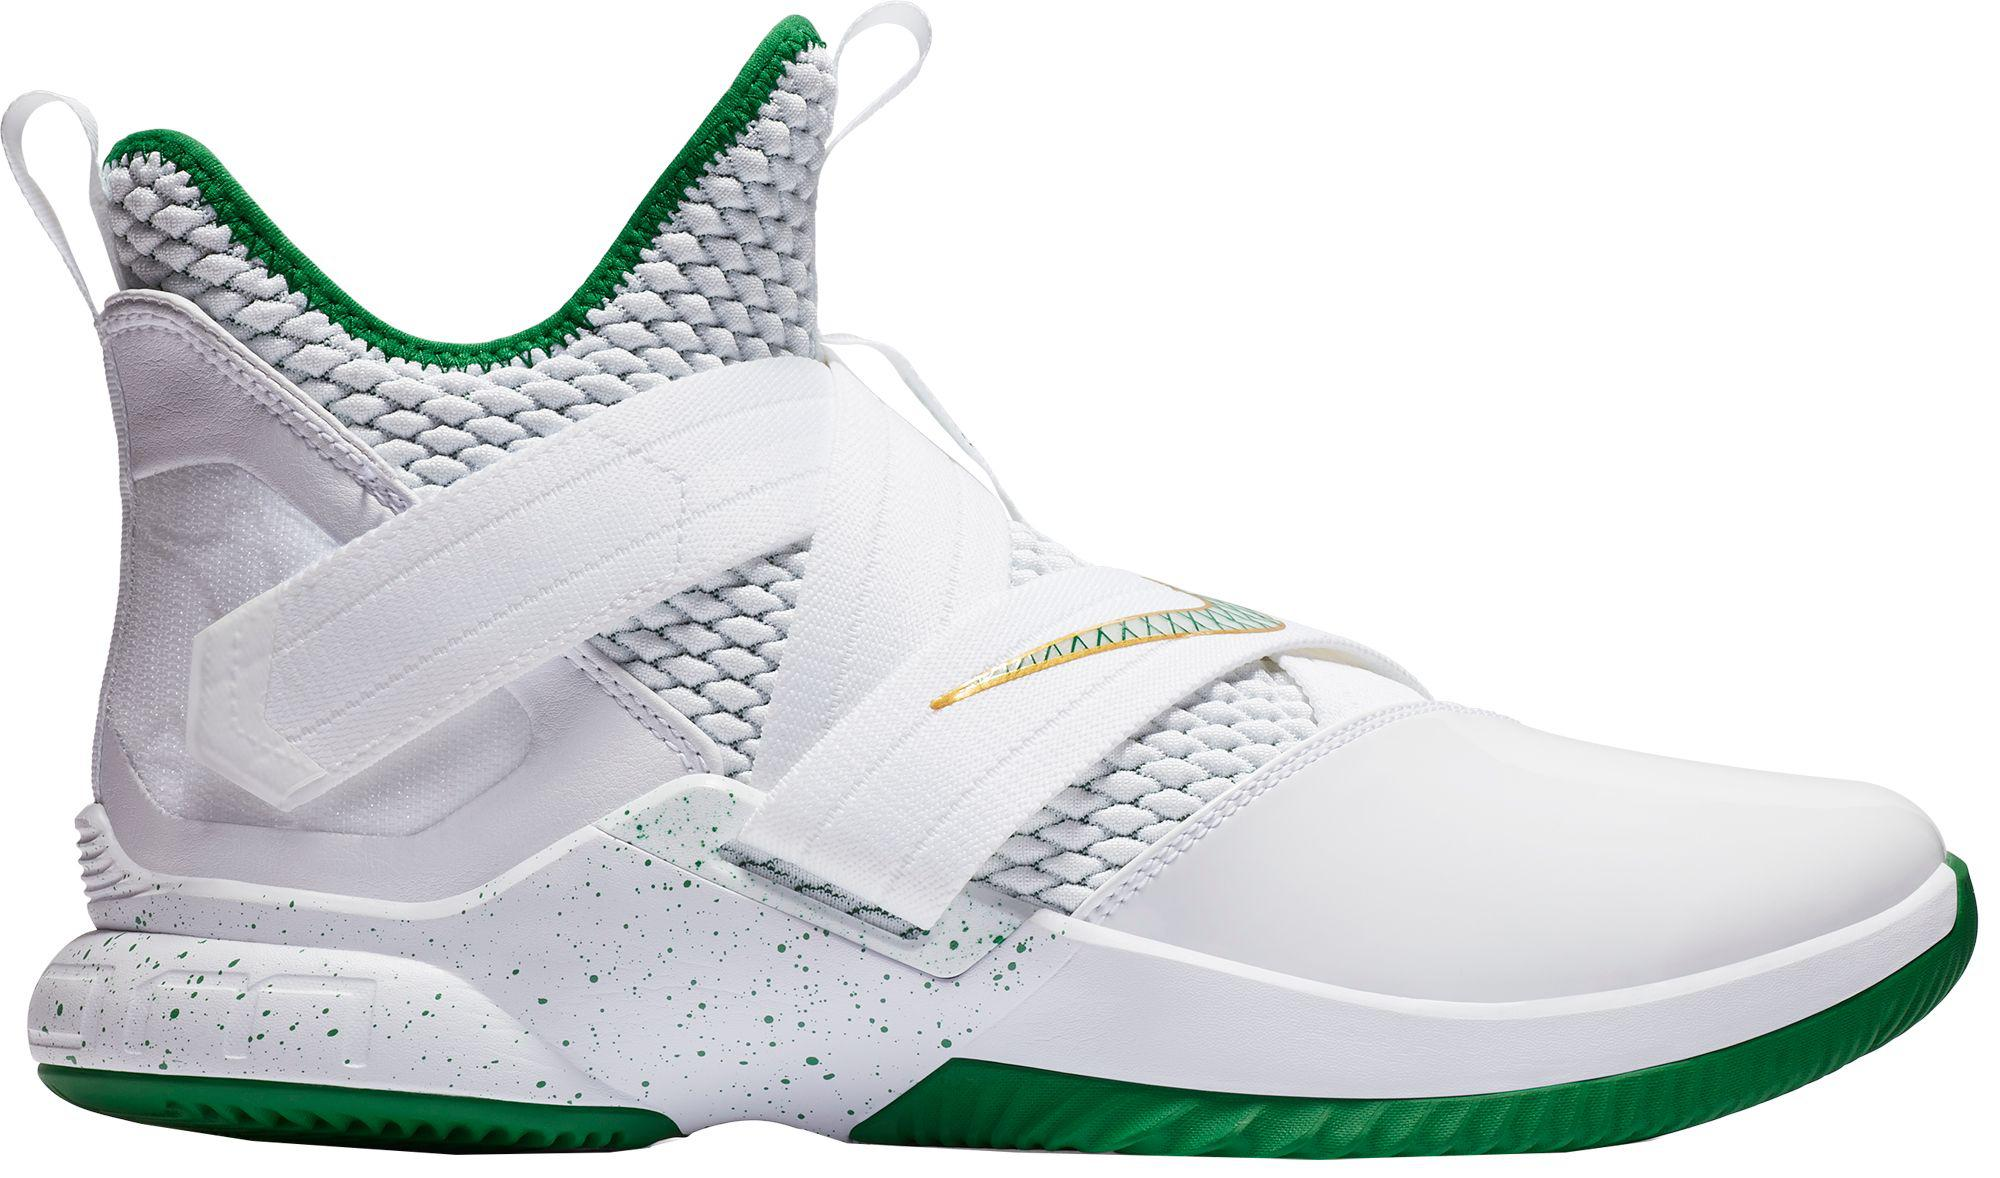 e71302147c1 Lyst - Nike Zoom Lebron Soldier Xii Basketball Shoes in White for Men